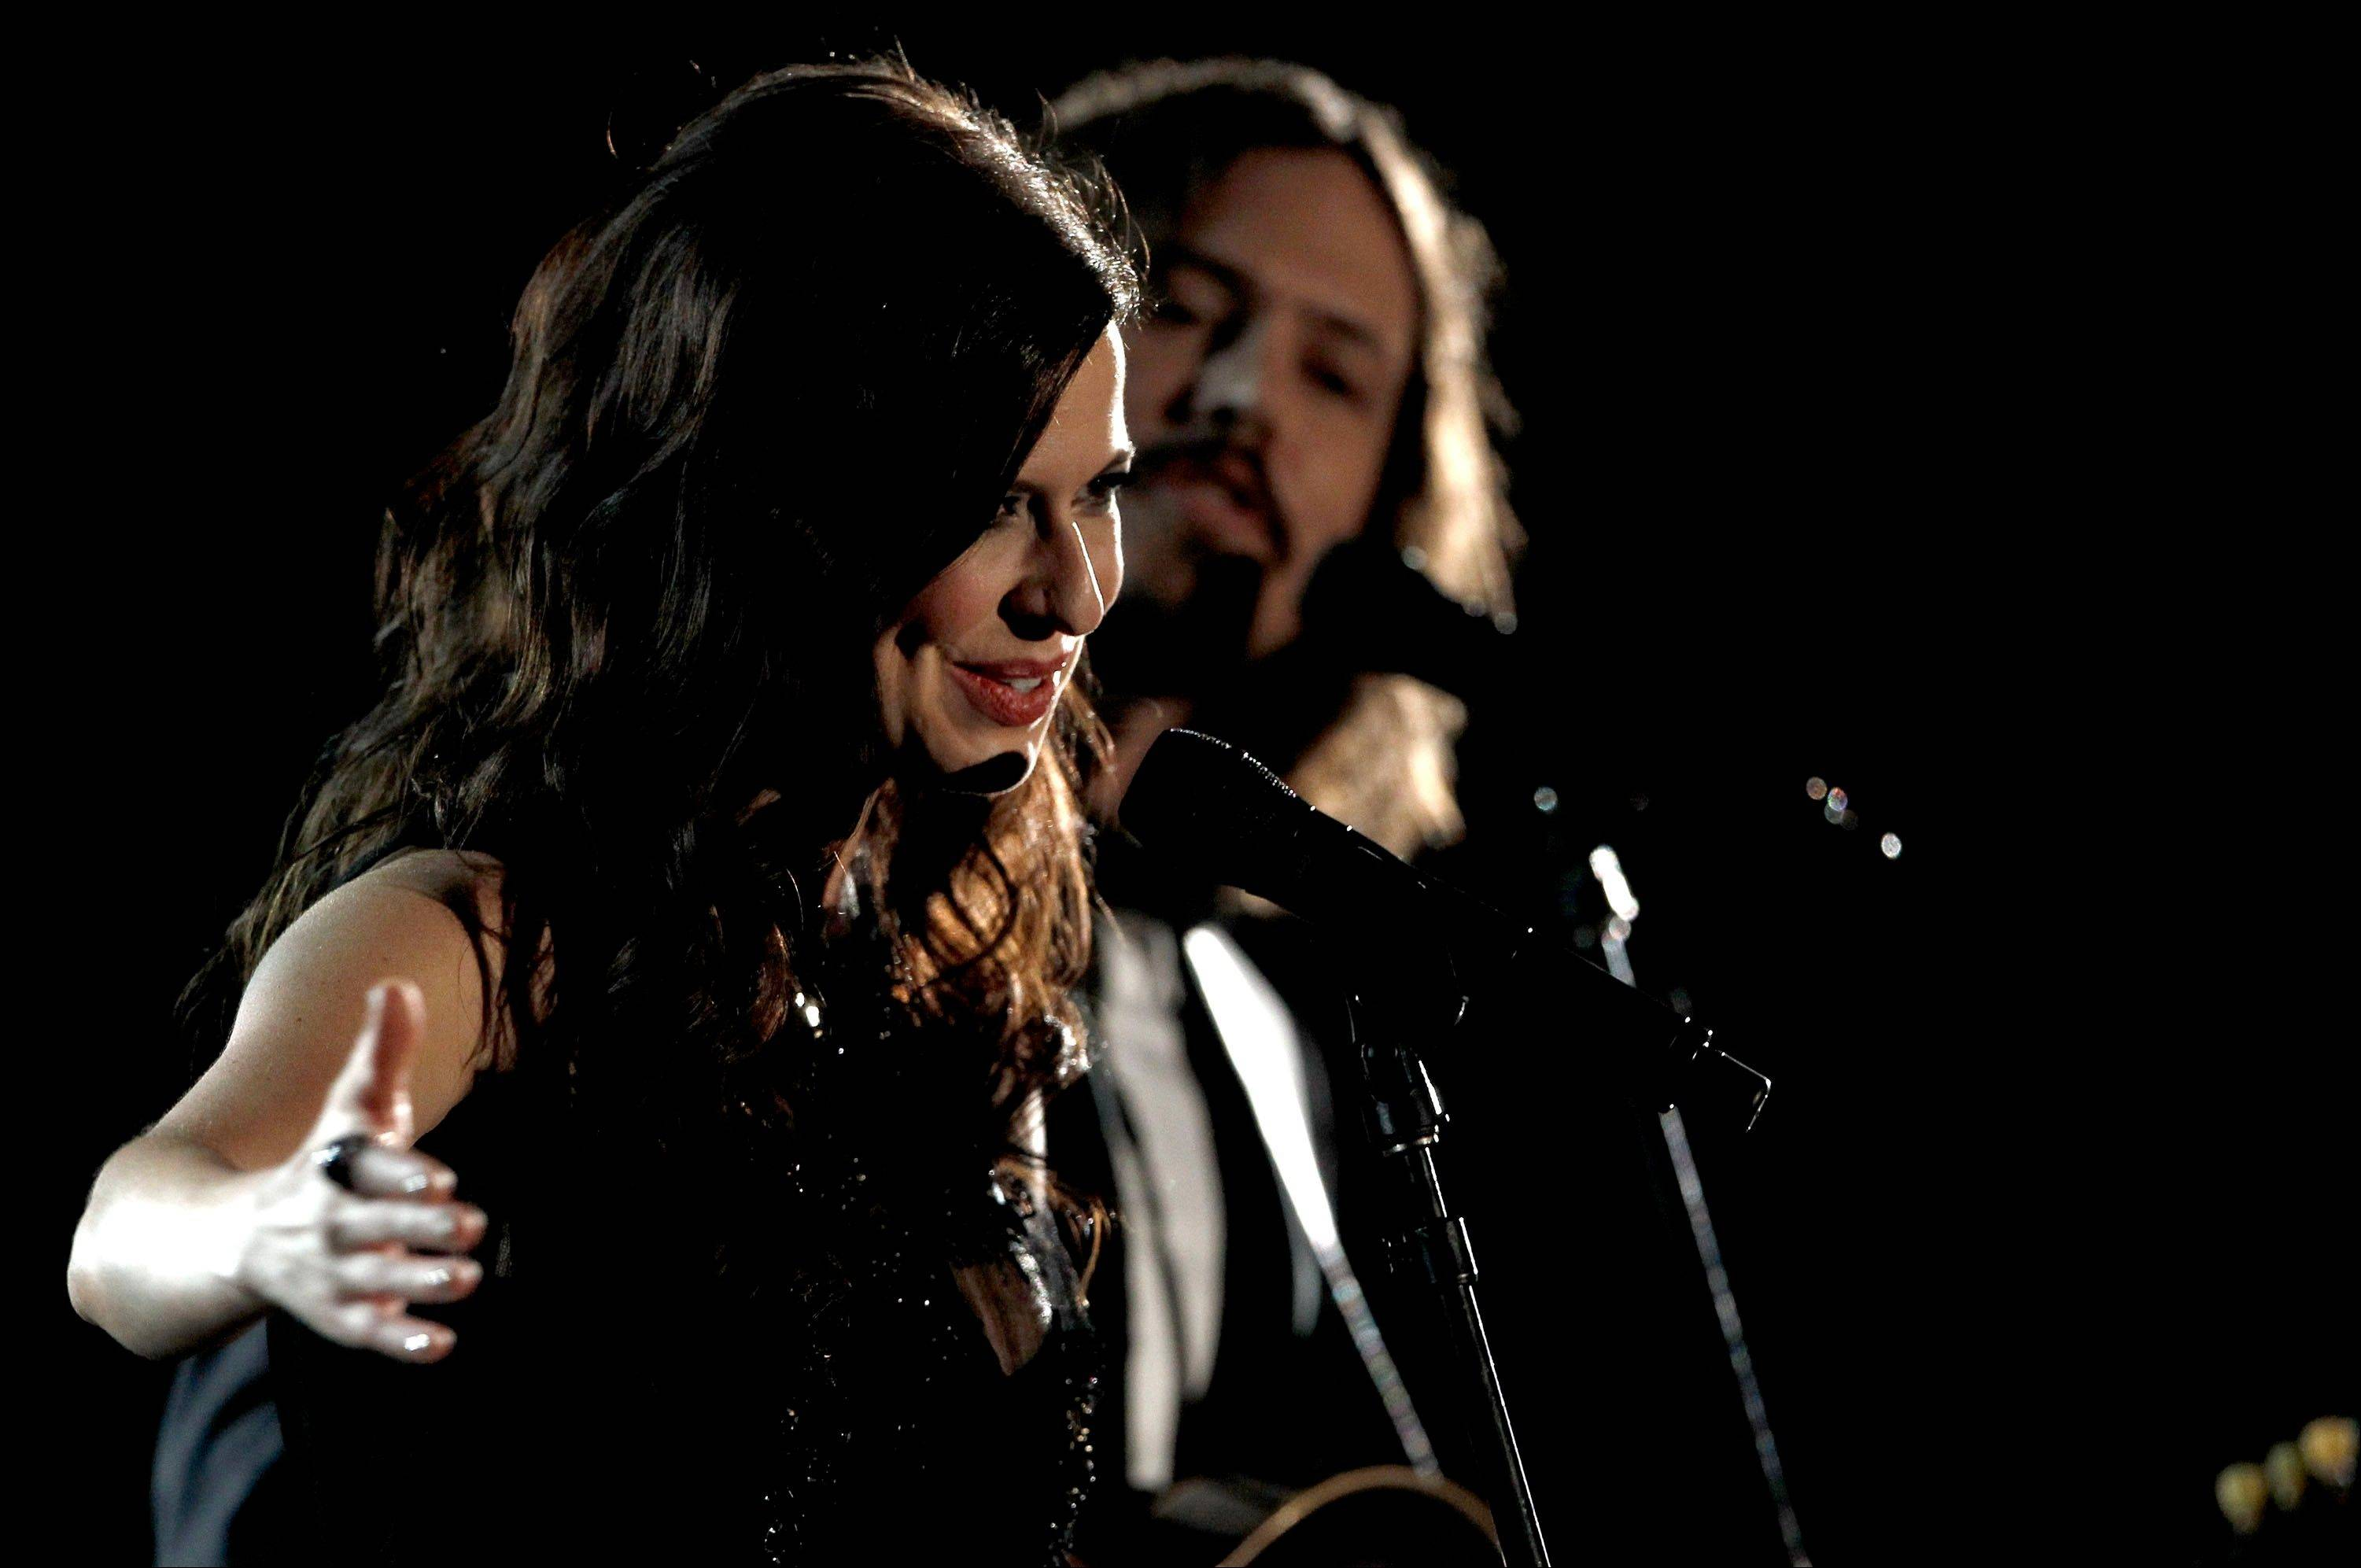 Joy Williams, left, and John Paul White, of musical group The Civil Wars, perform Sunday during the 54th annual Grammy Awards in Los Angeles.